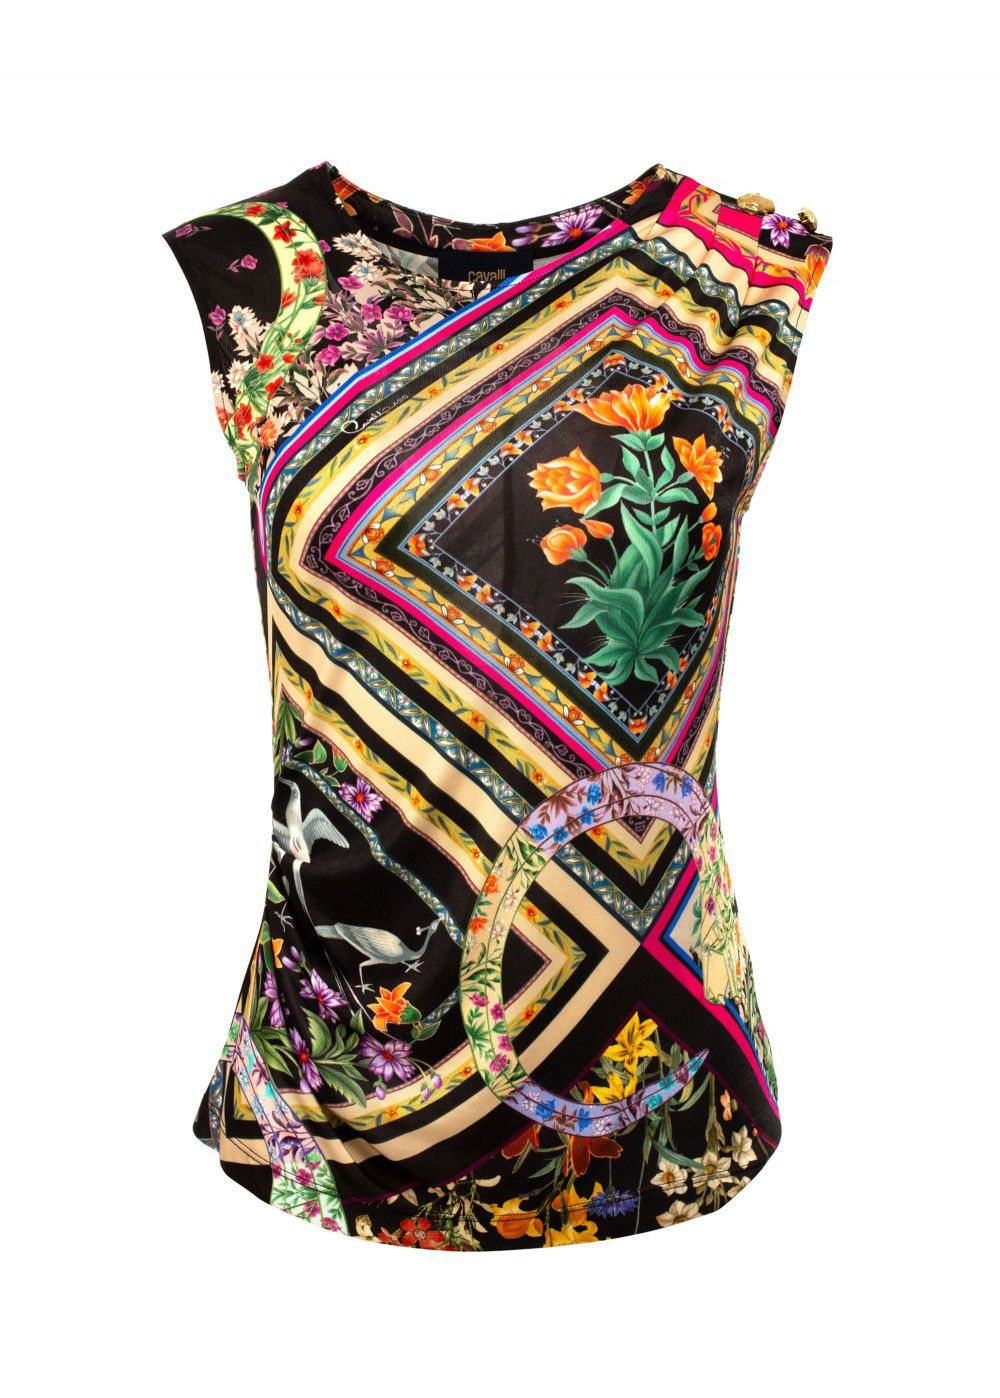 Roberto Cavalli Multicoloured Silk Top